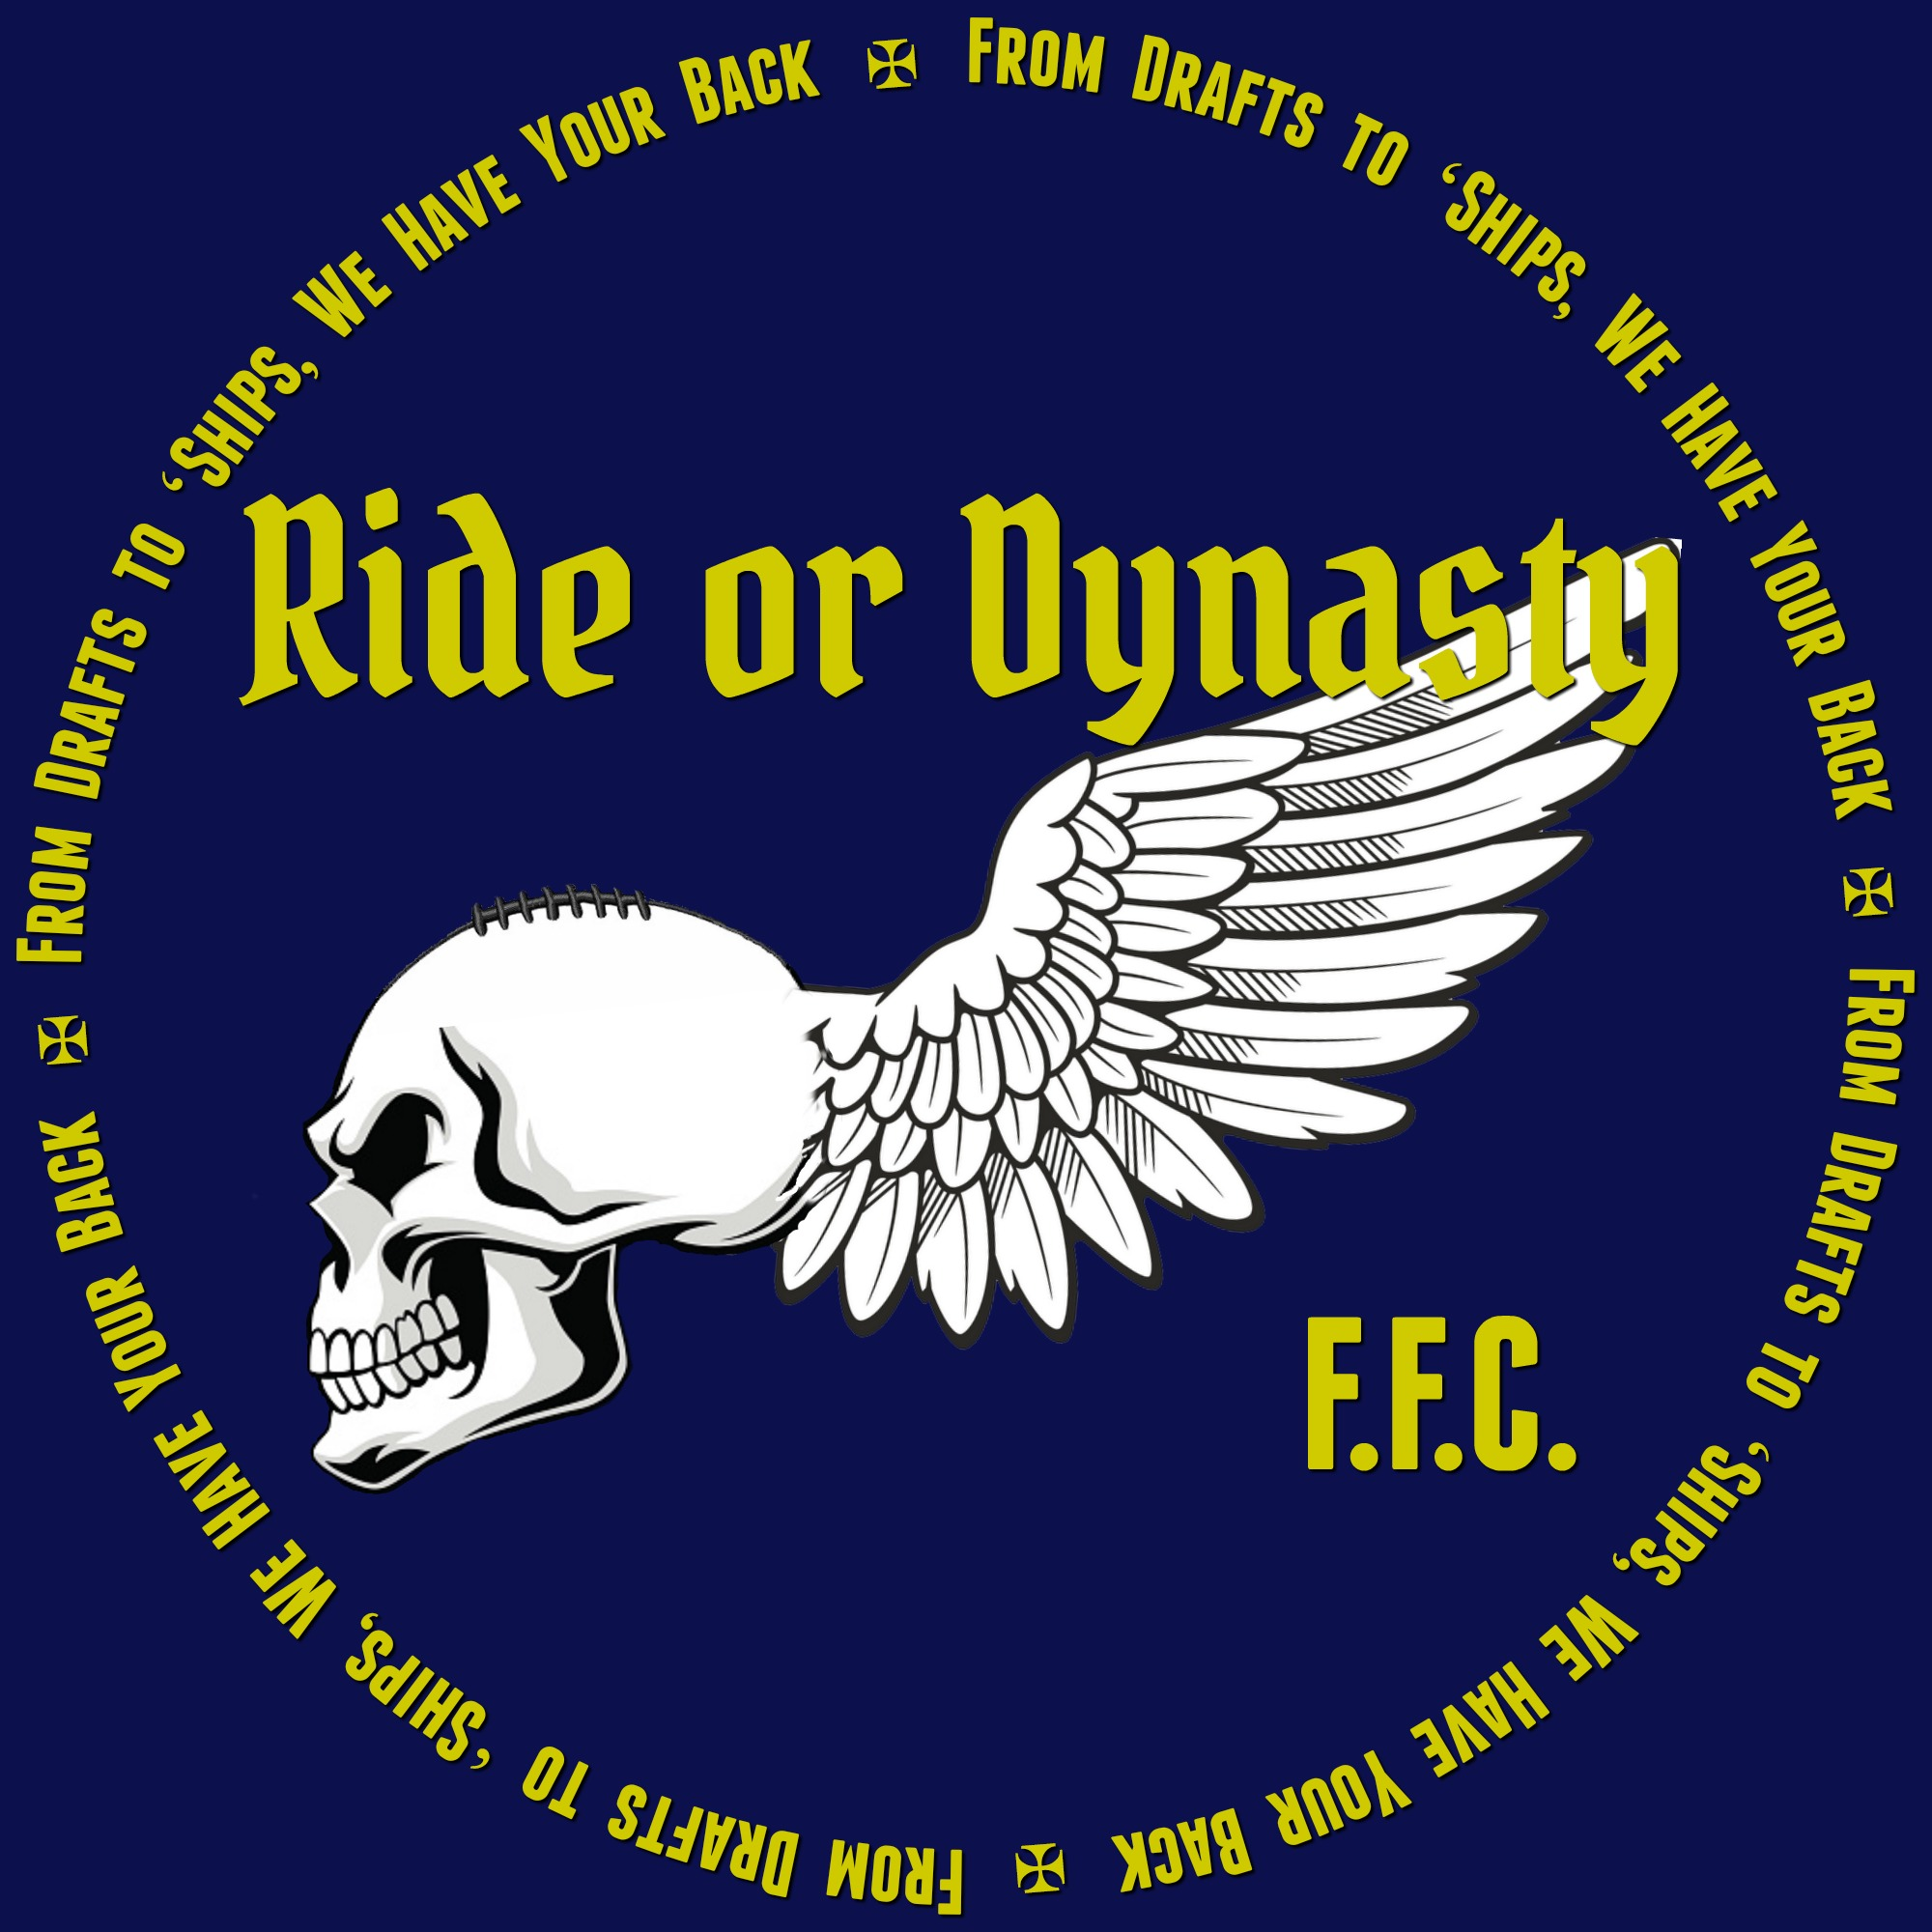 Ride or Dynasty Podcast